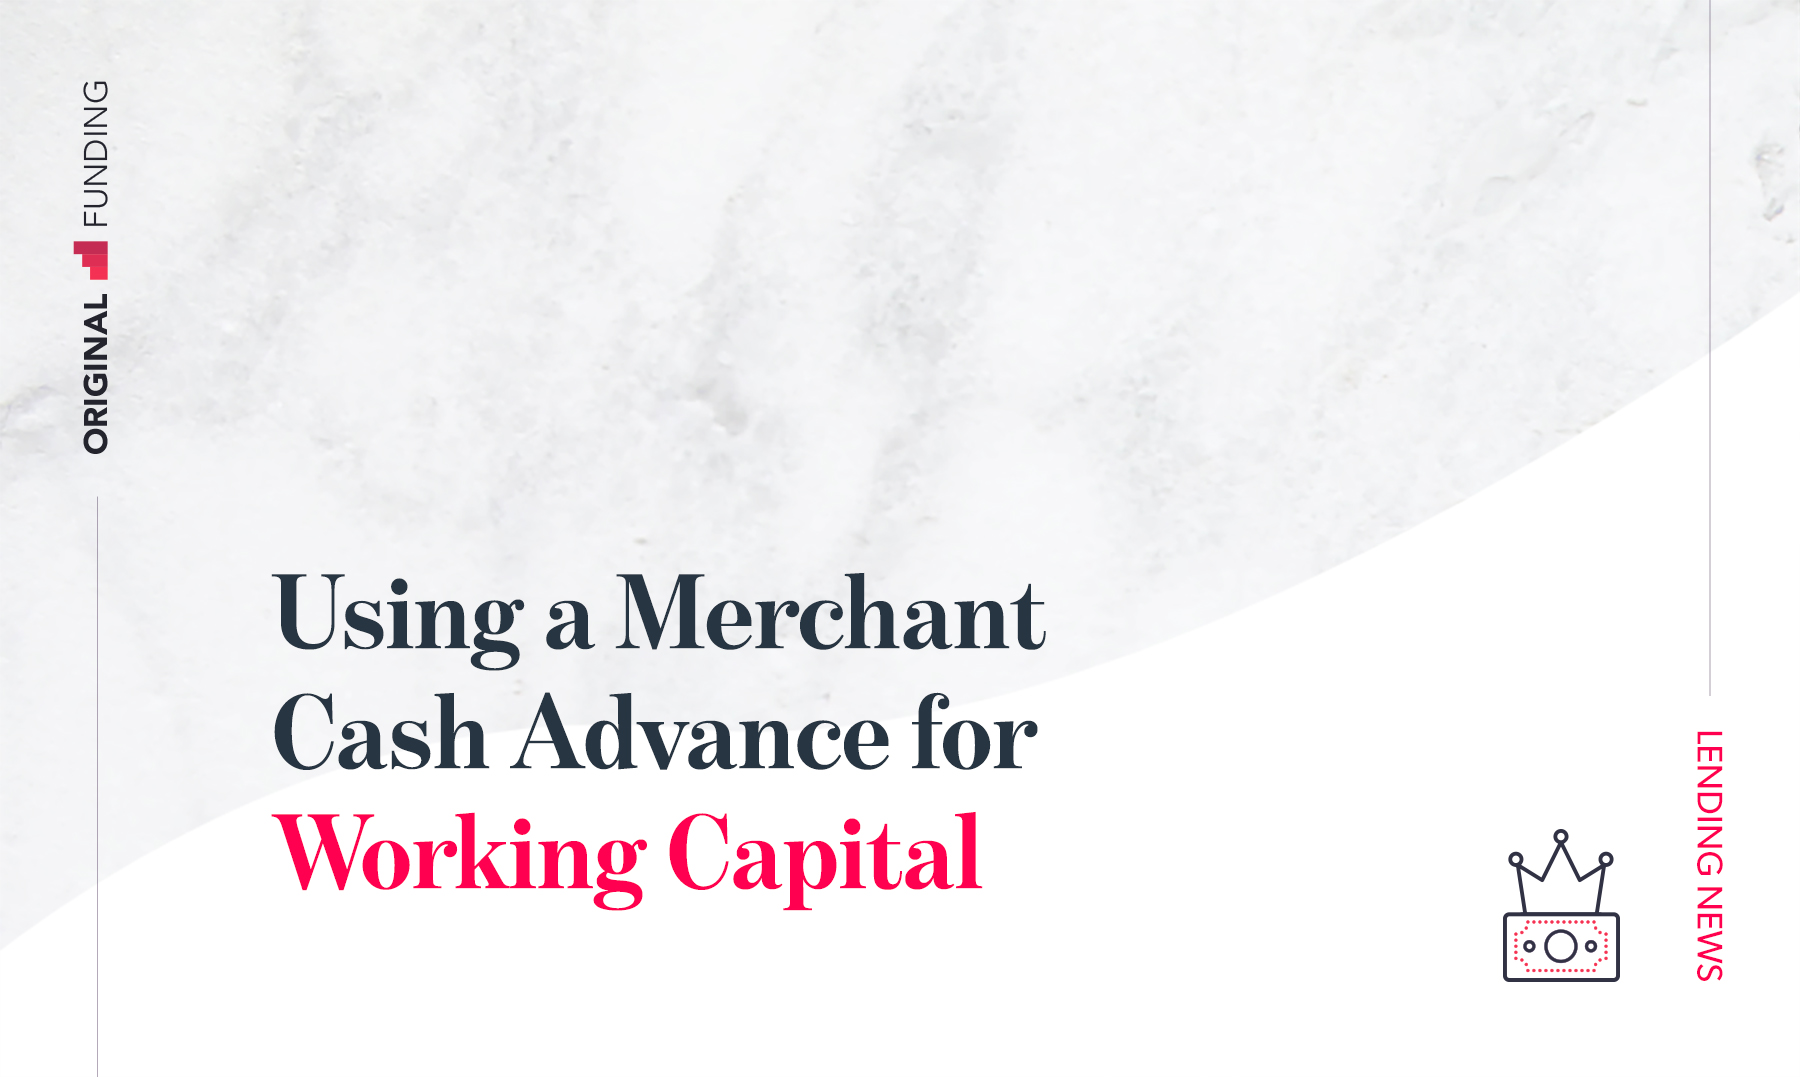 Using a Merchant Cash Advance for Working Capital